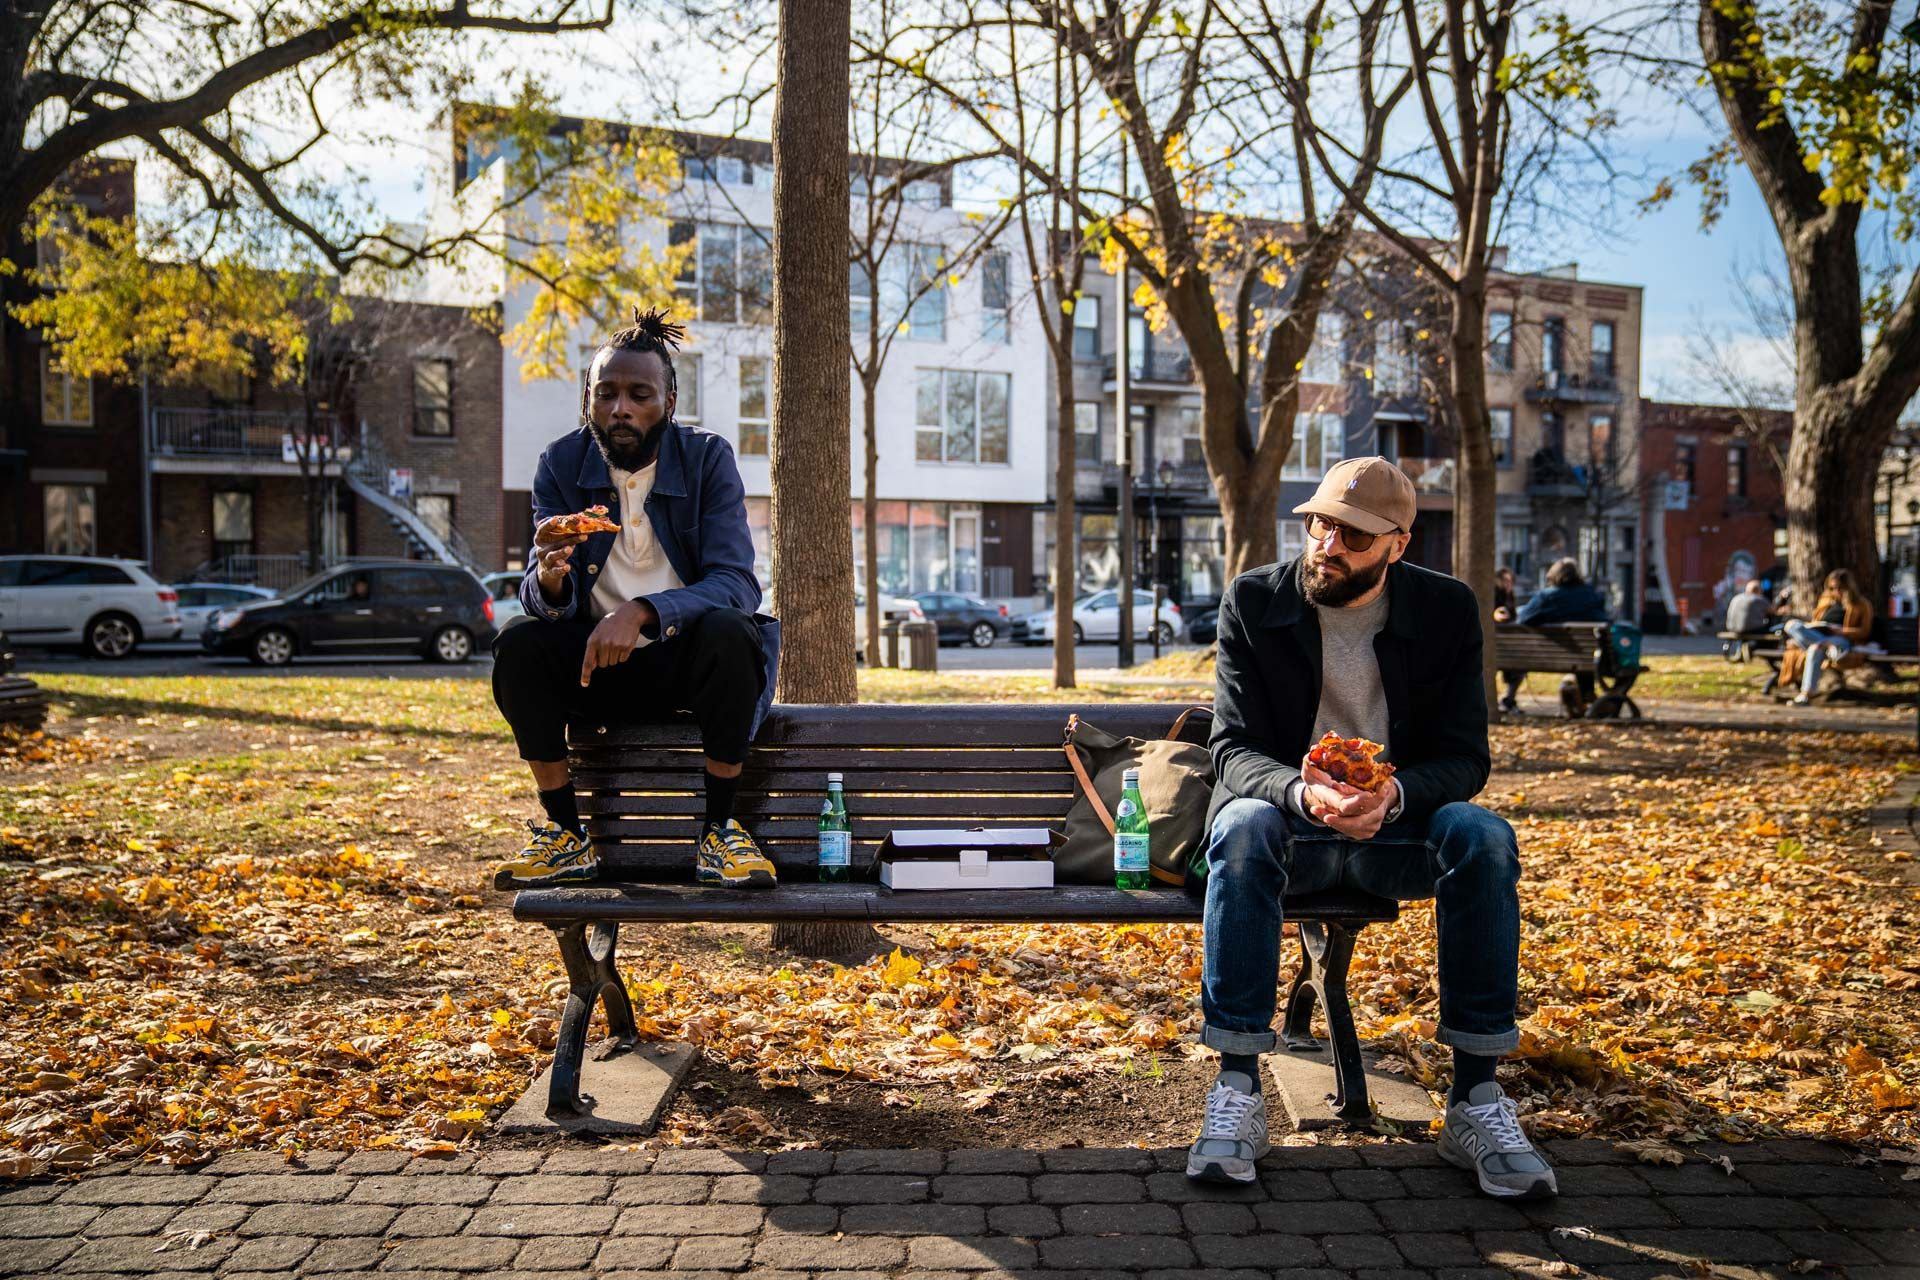 Dahls workwear and aprons photographed by Bruno Florin of man model Julio sitting on bench in park eating pizza wearing dark blue work shirt